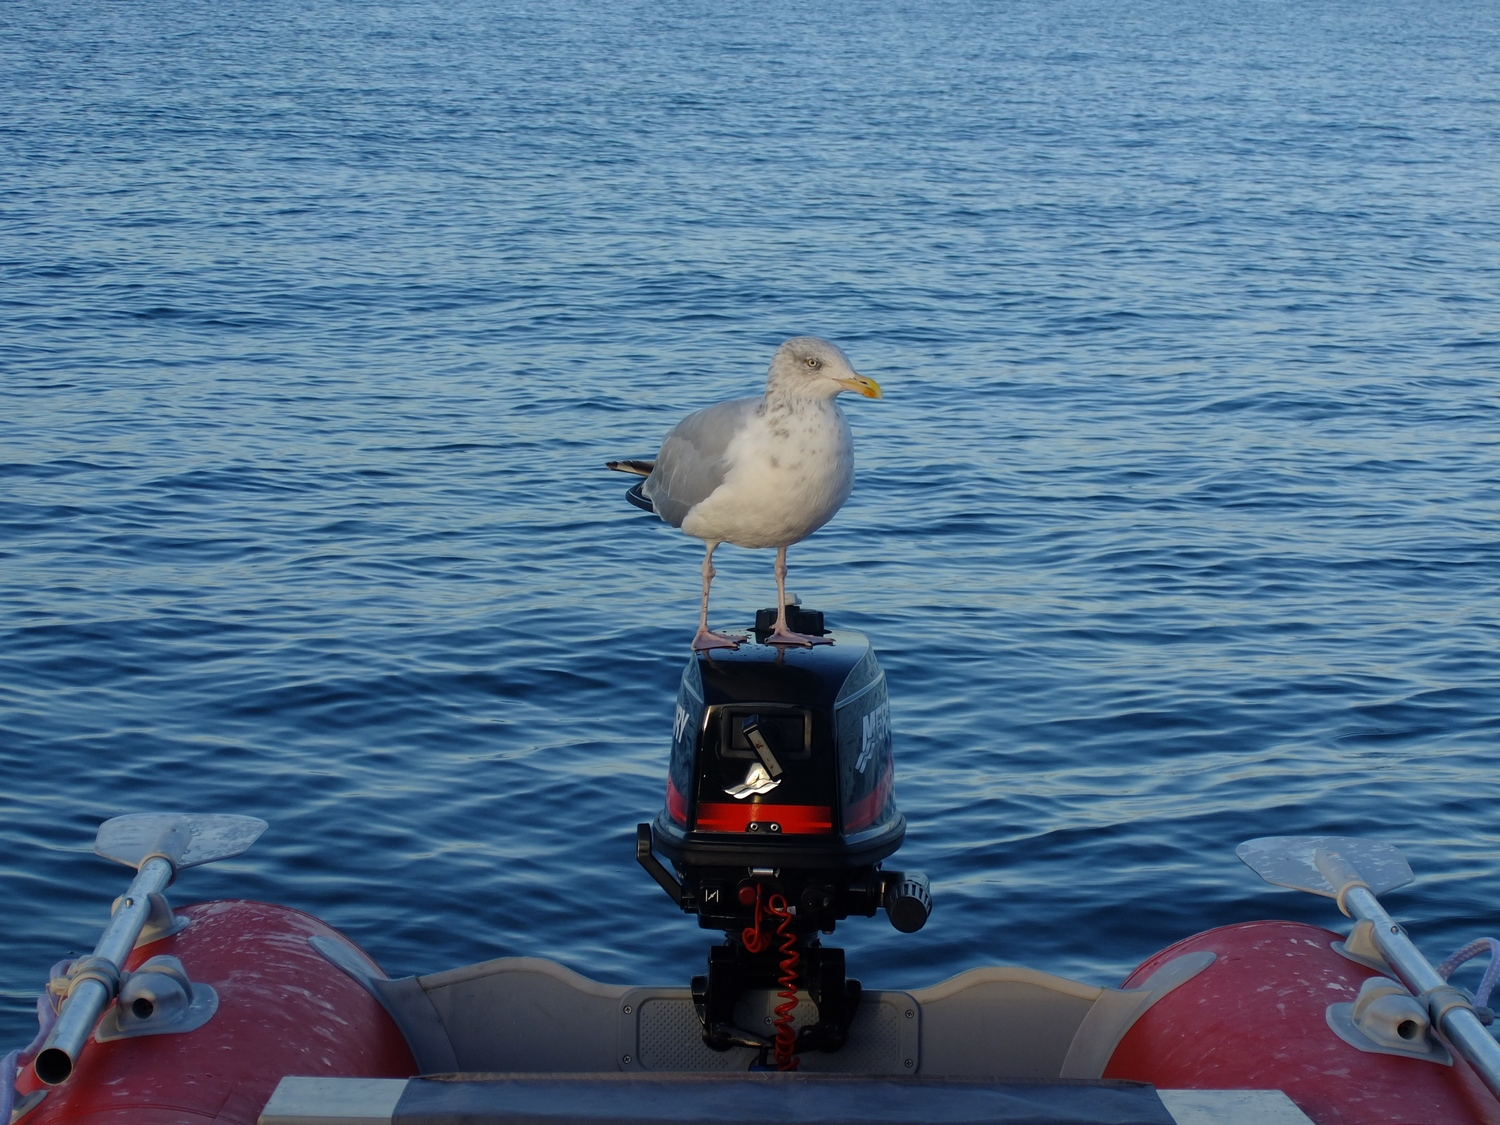 New accessory on our outboard engine